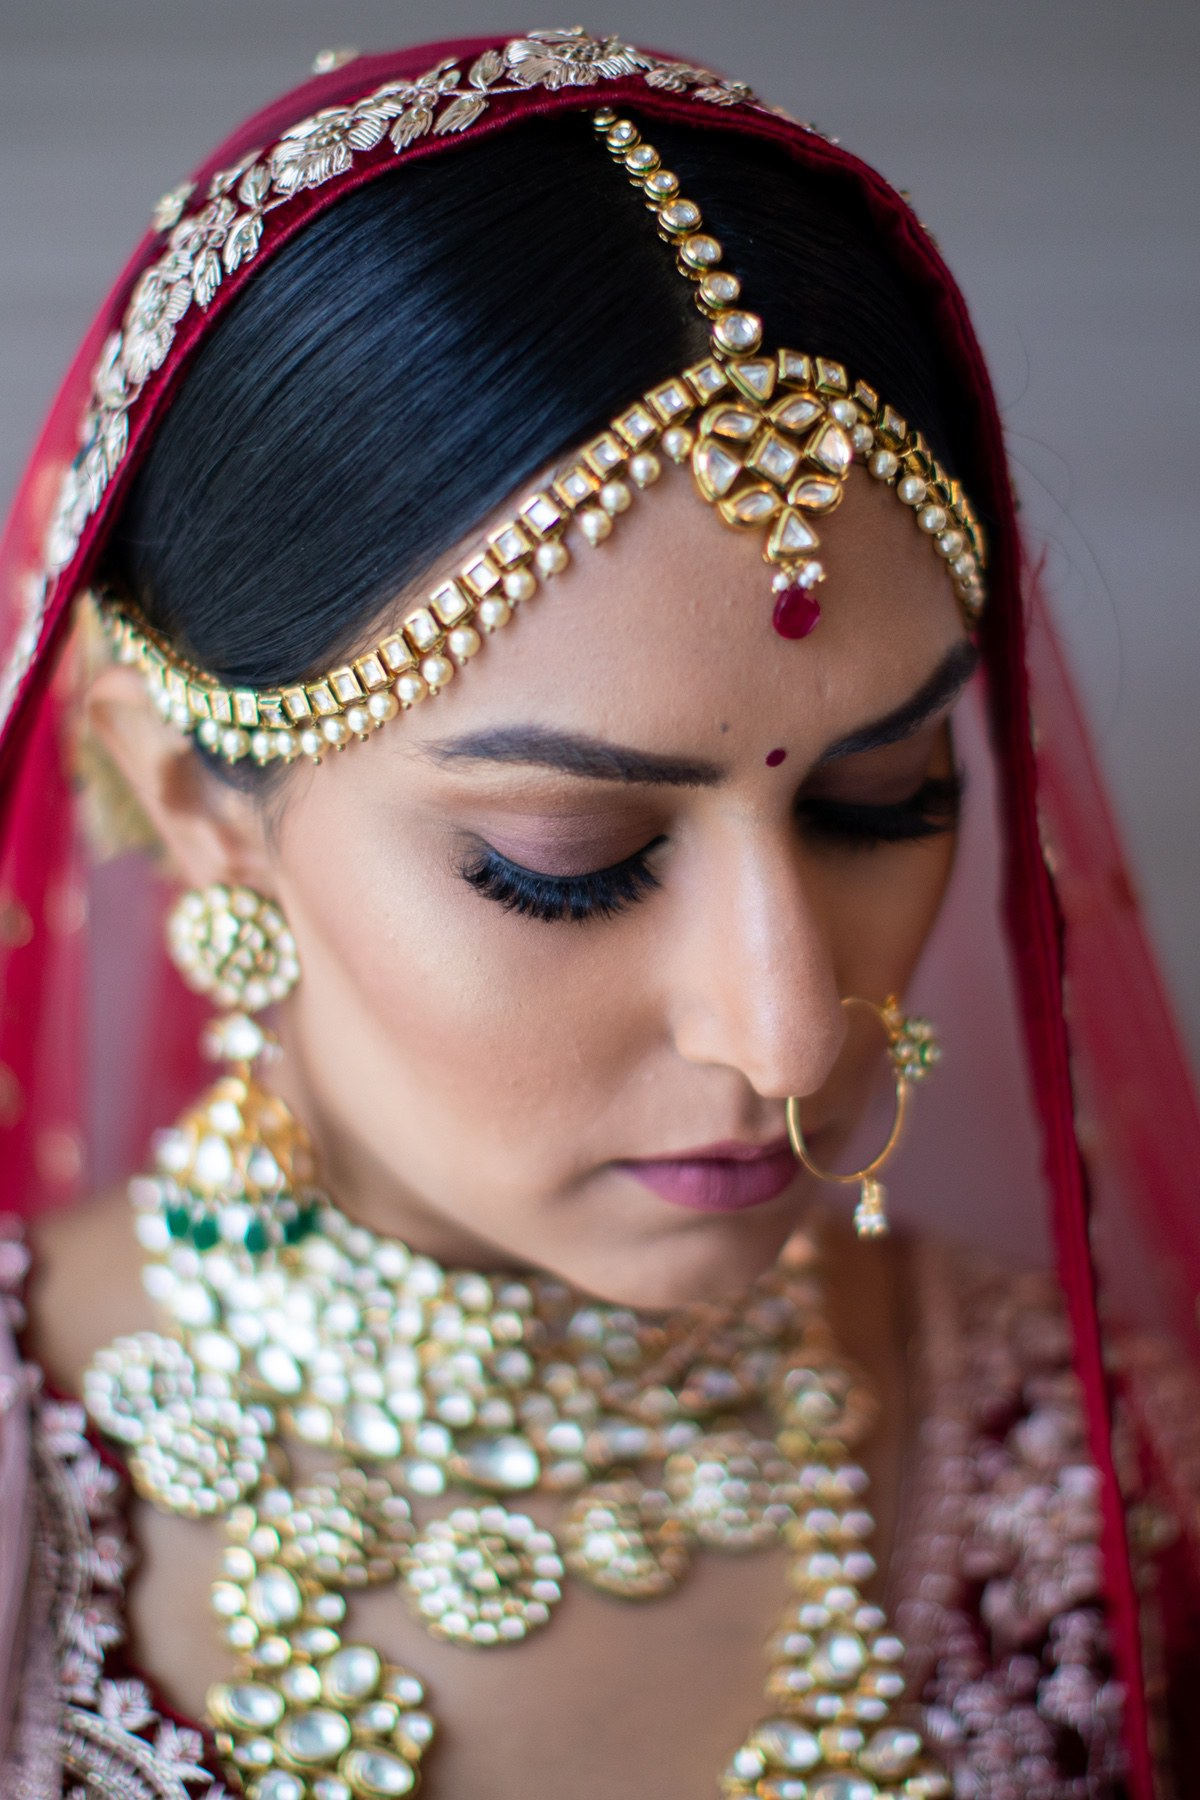 Le_Cape_Weddings_-_Serena_and_Kylash_-_Chicago_South_Asian_Wedding_-_Bride_Getting_Ready-53.jpg